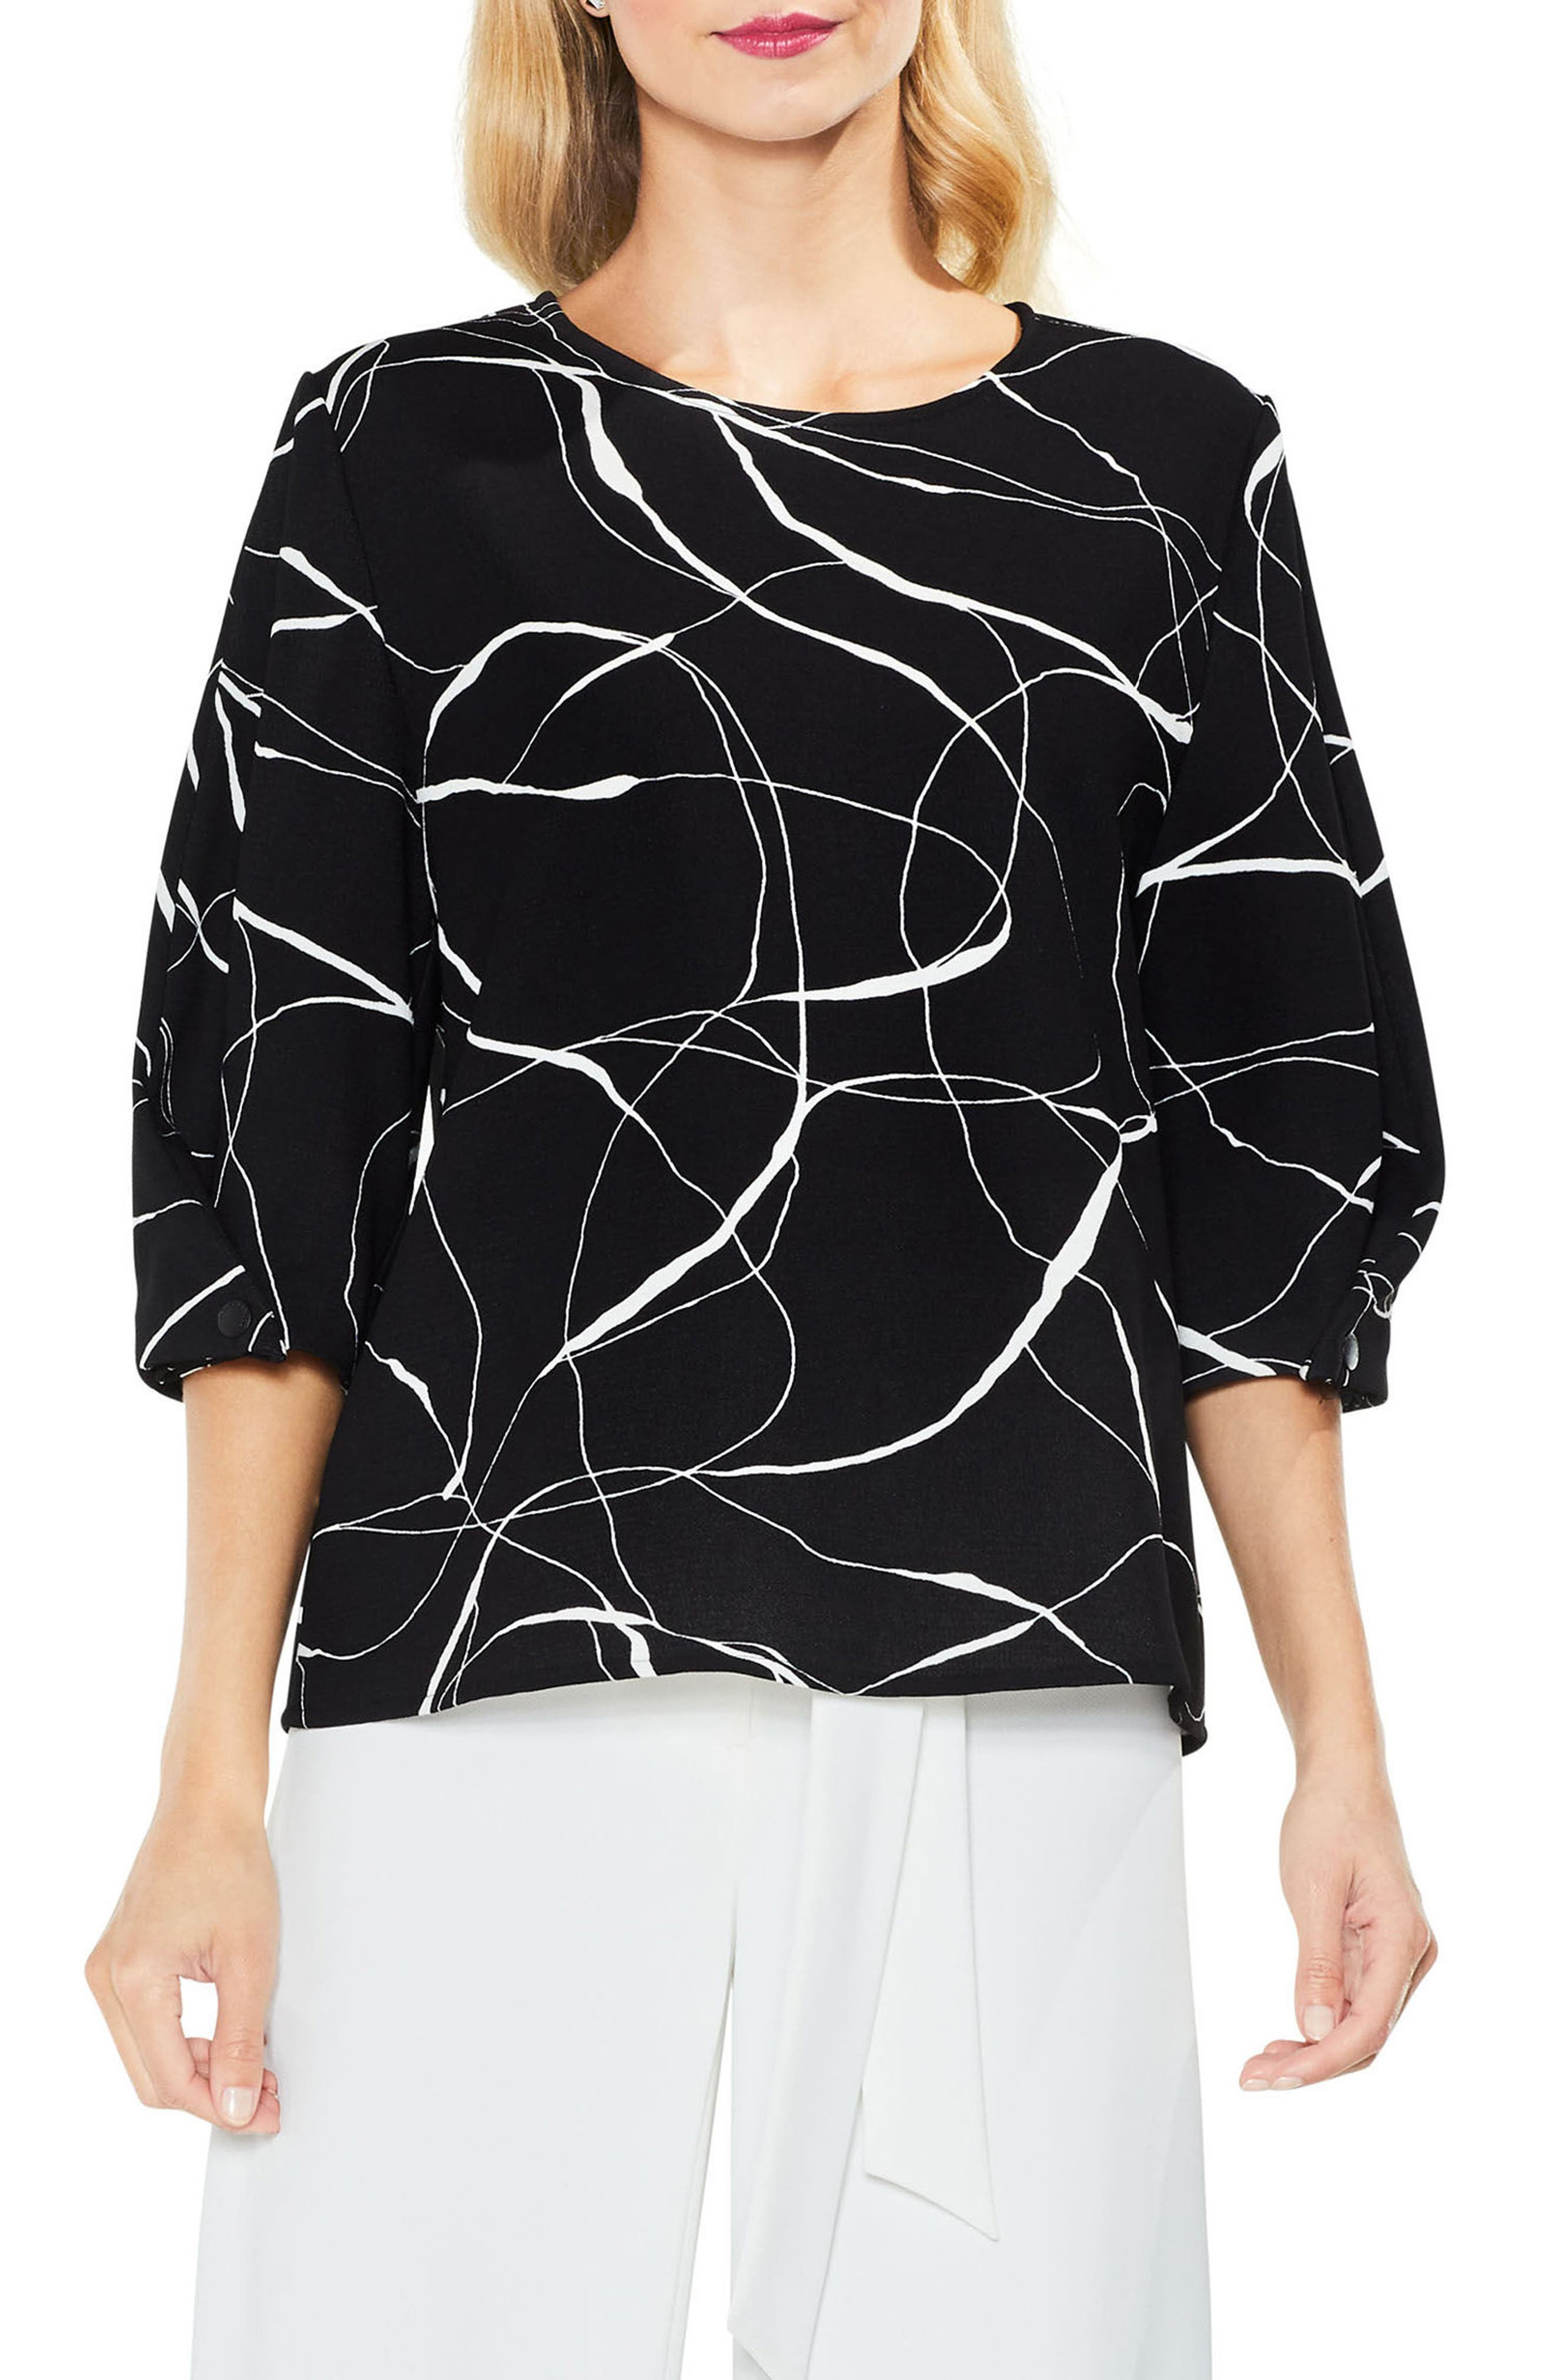 Alternate Image 1 Selected - Vince Camuto Ink Swirl Crepe Blouse